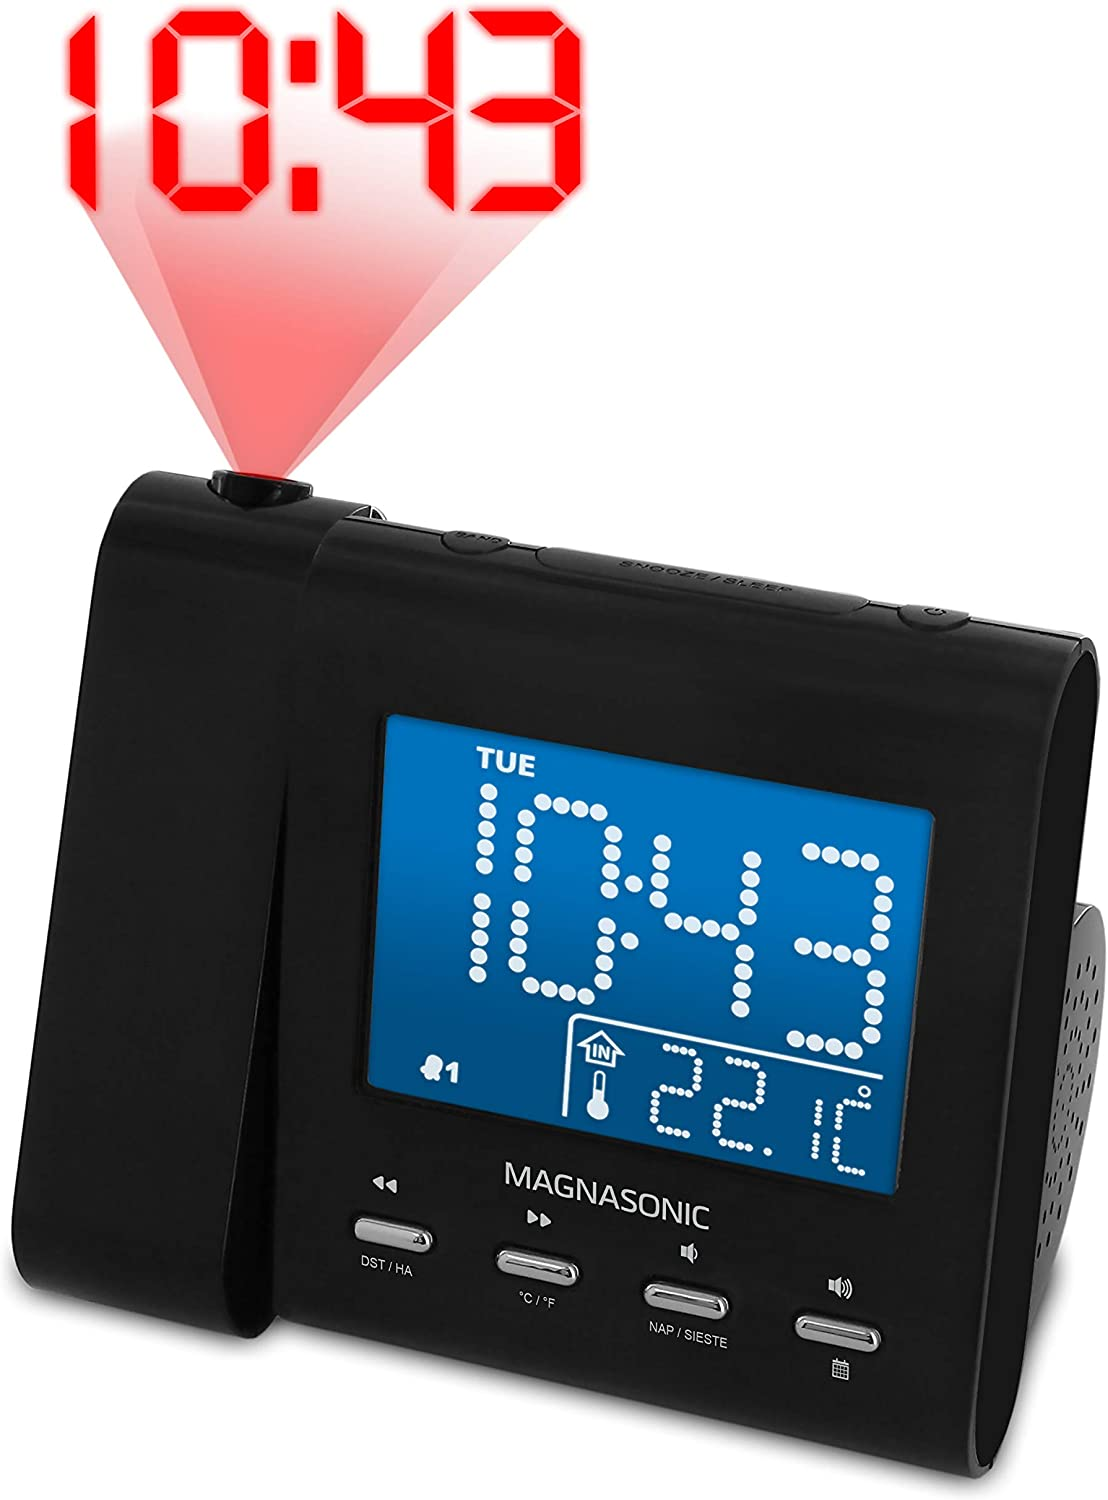 Magnasonic (EAAC601) Projection Alarm Clock with FM Radio